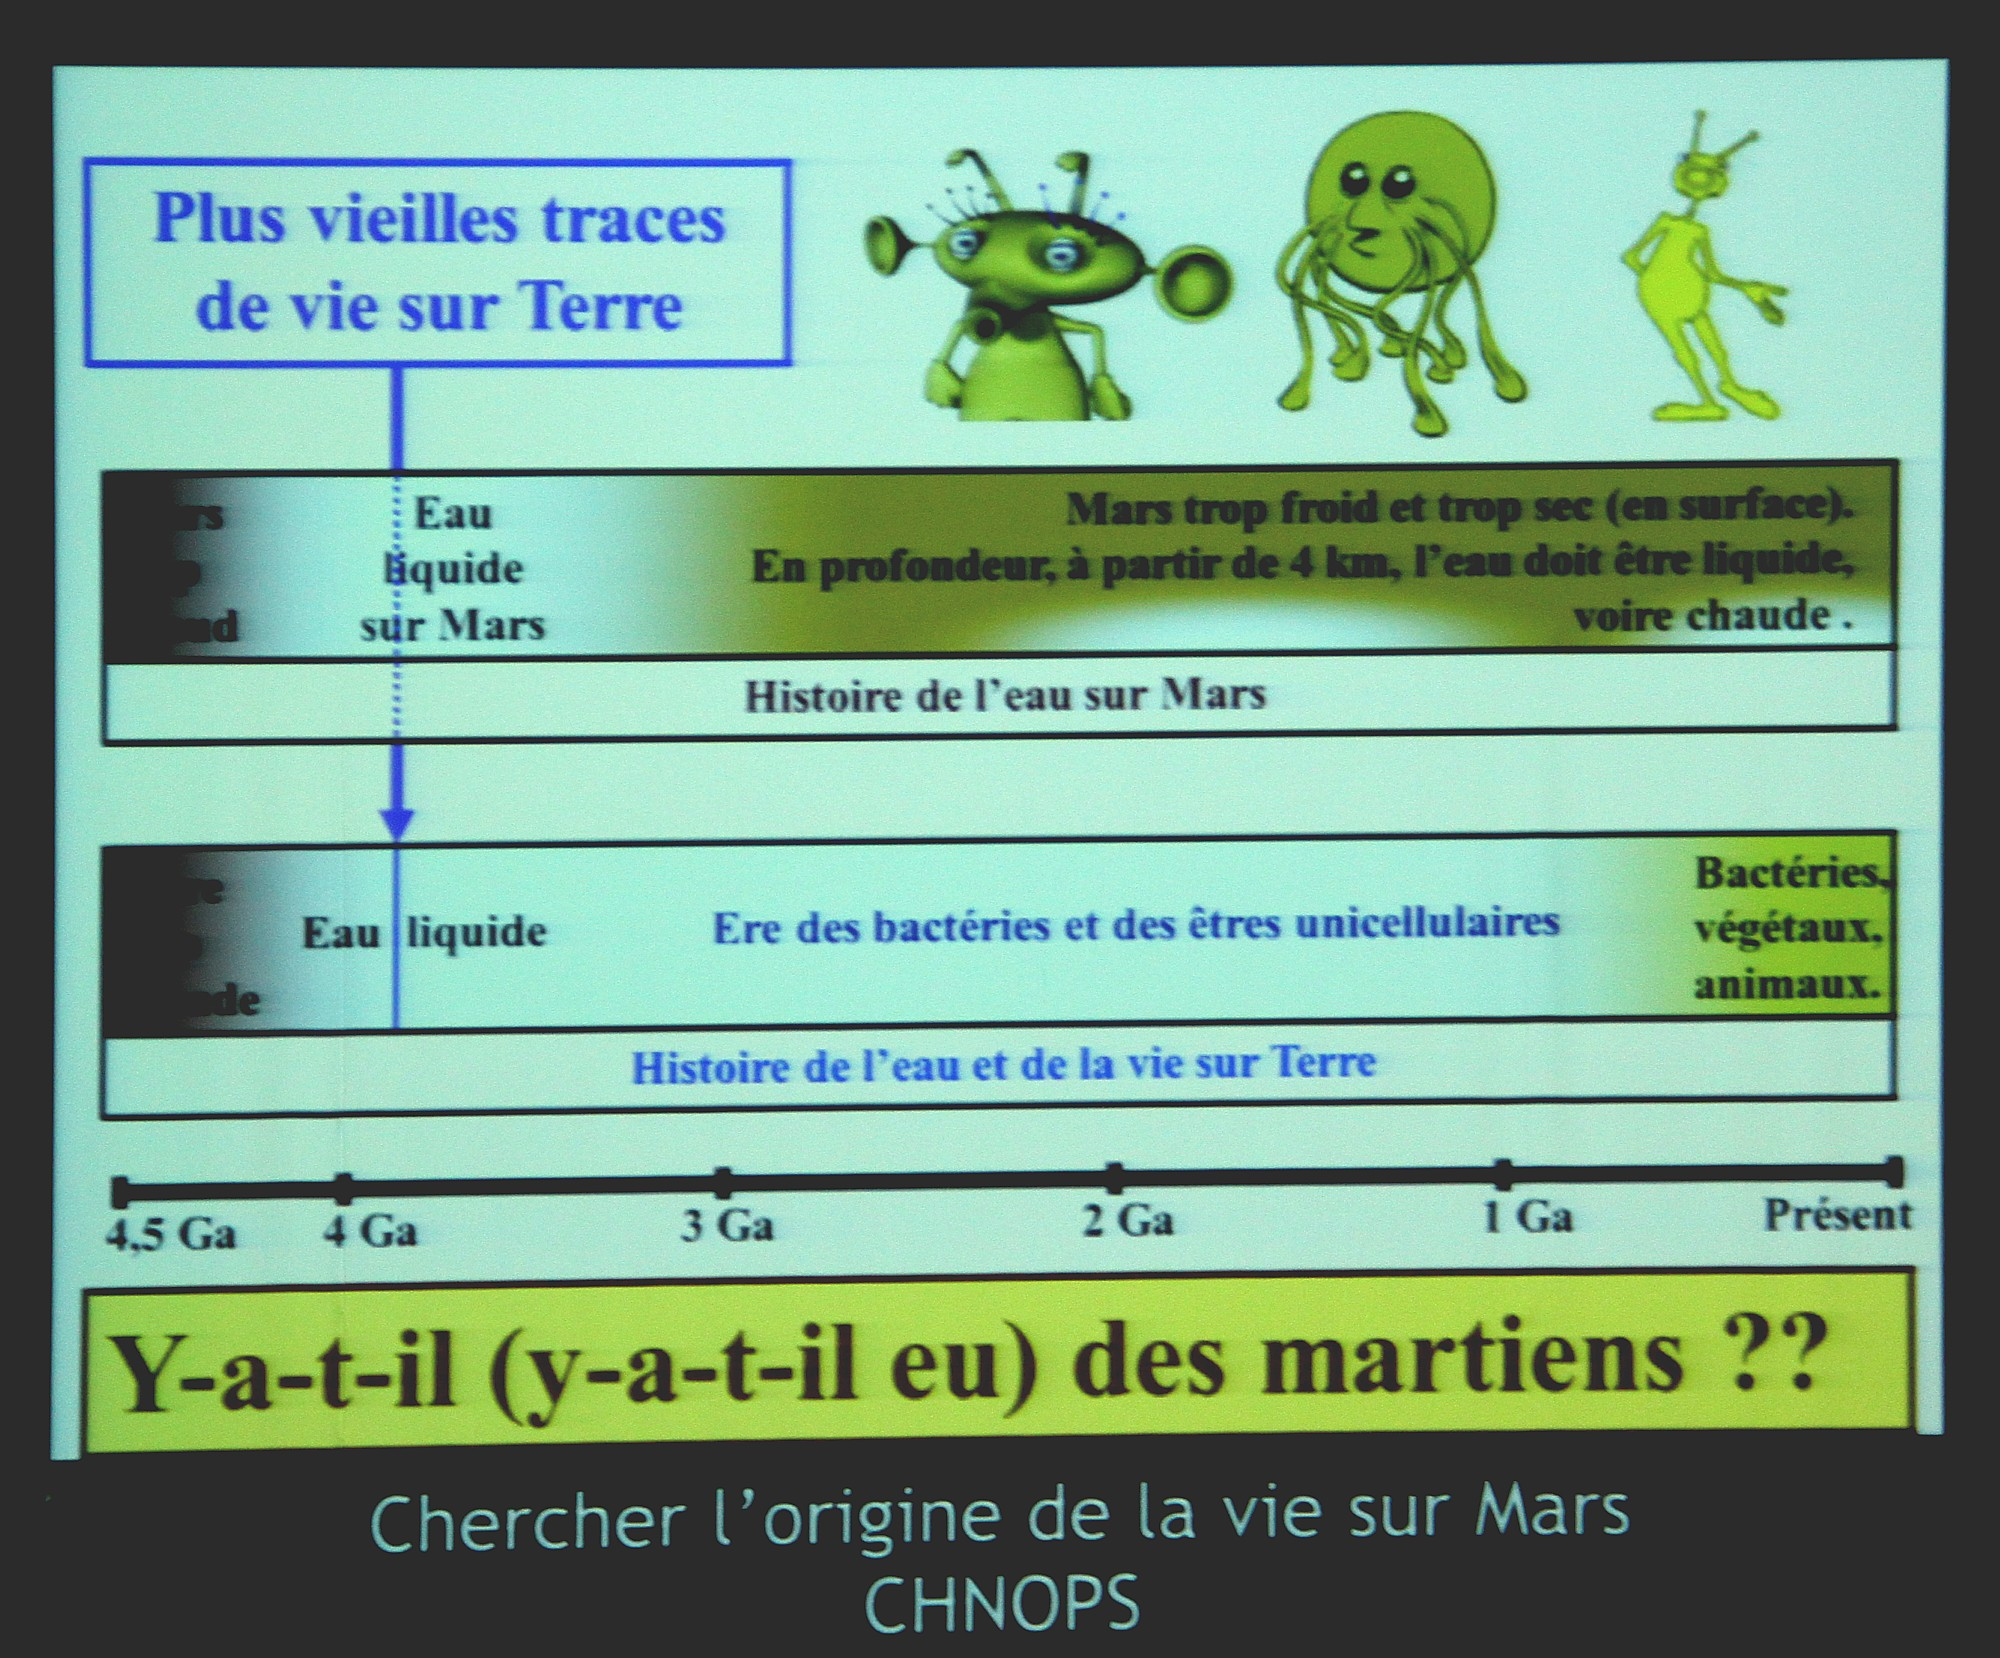 15 05 31 - 17h 54m 44s - We are going to Mars Gennevilliers r rec